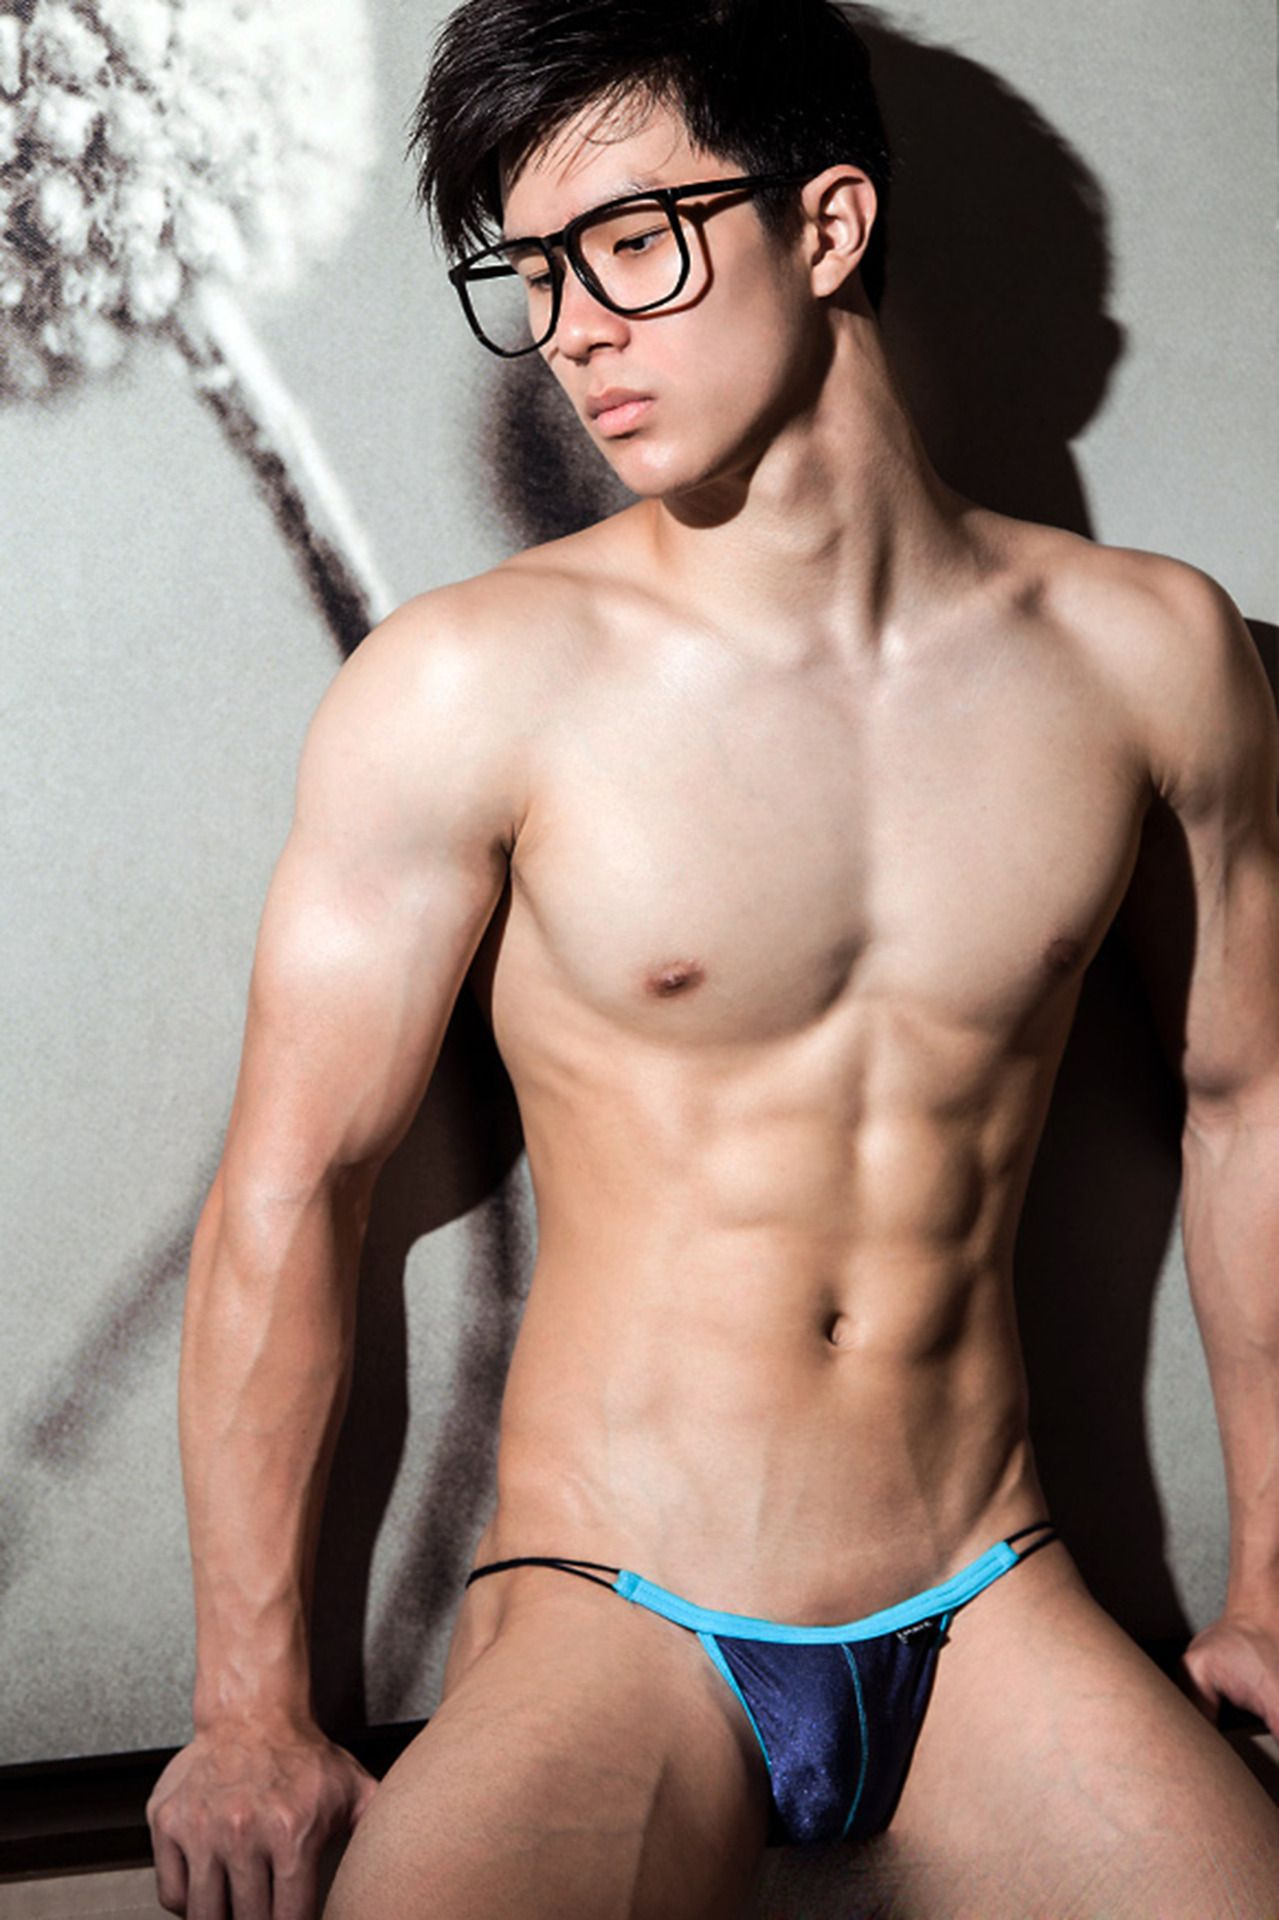 Asian boys wearing thongs